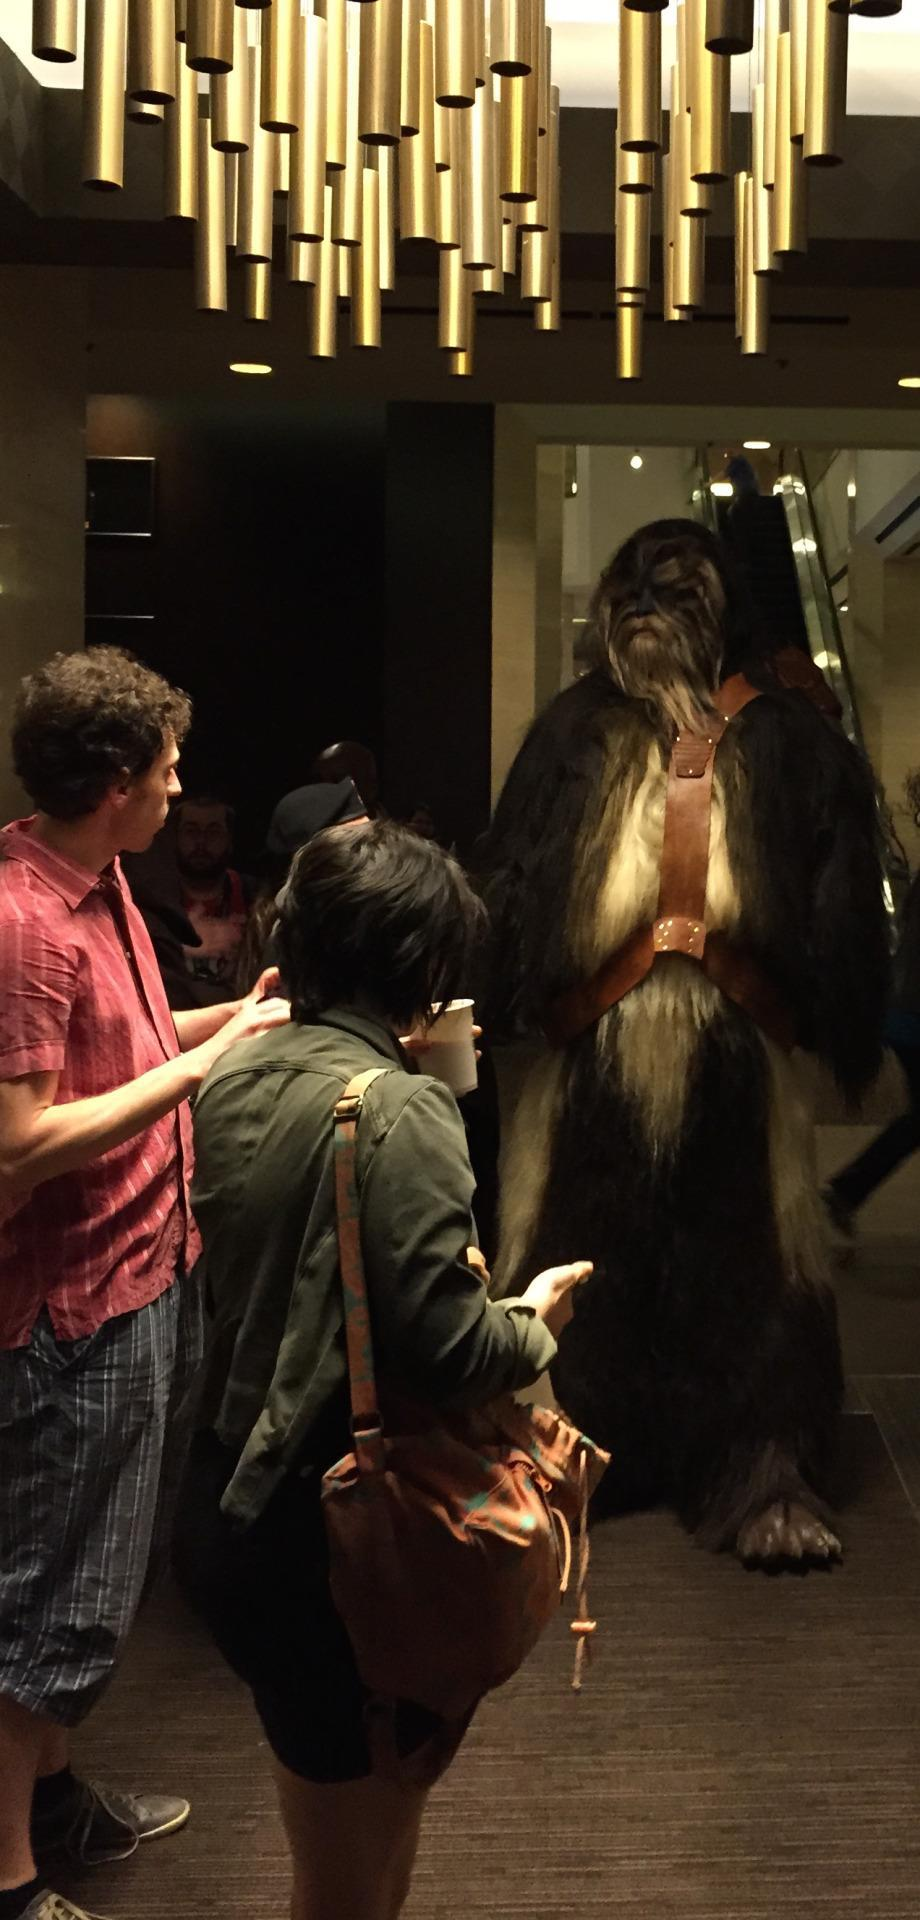 This is what happens when a Wookiee walks into a hotel lobby.